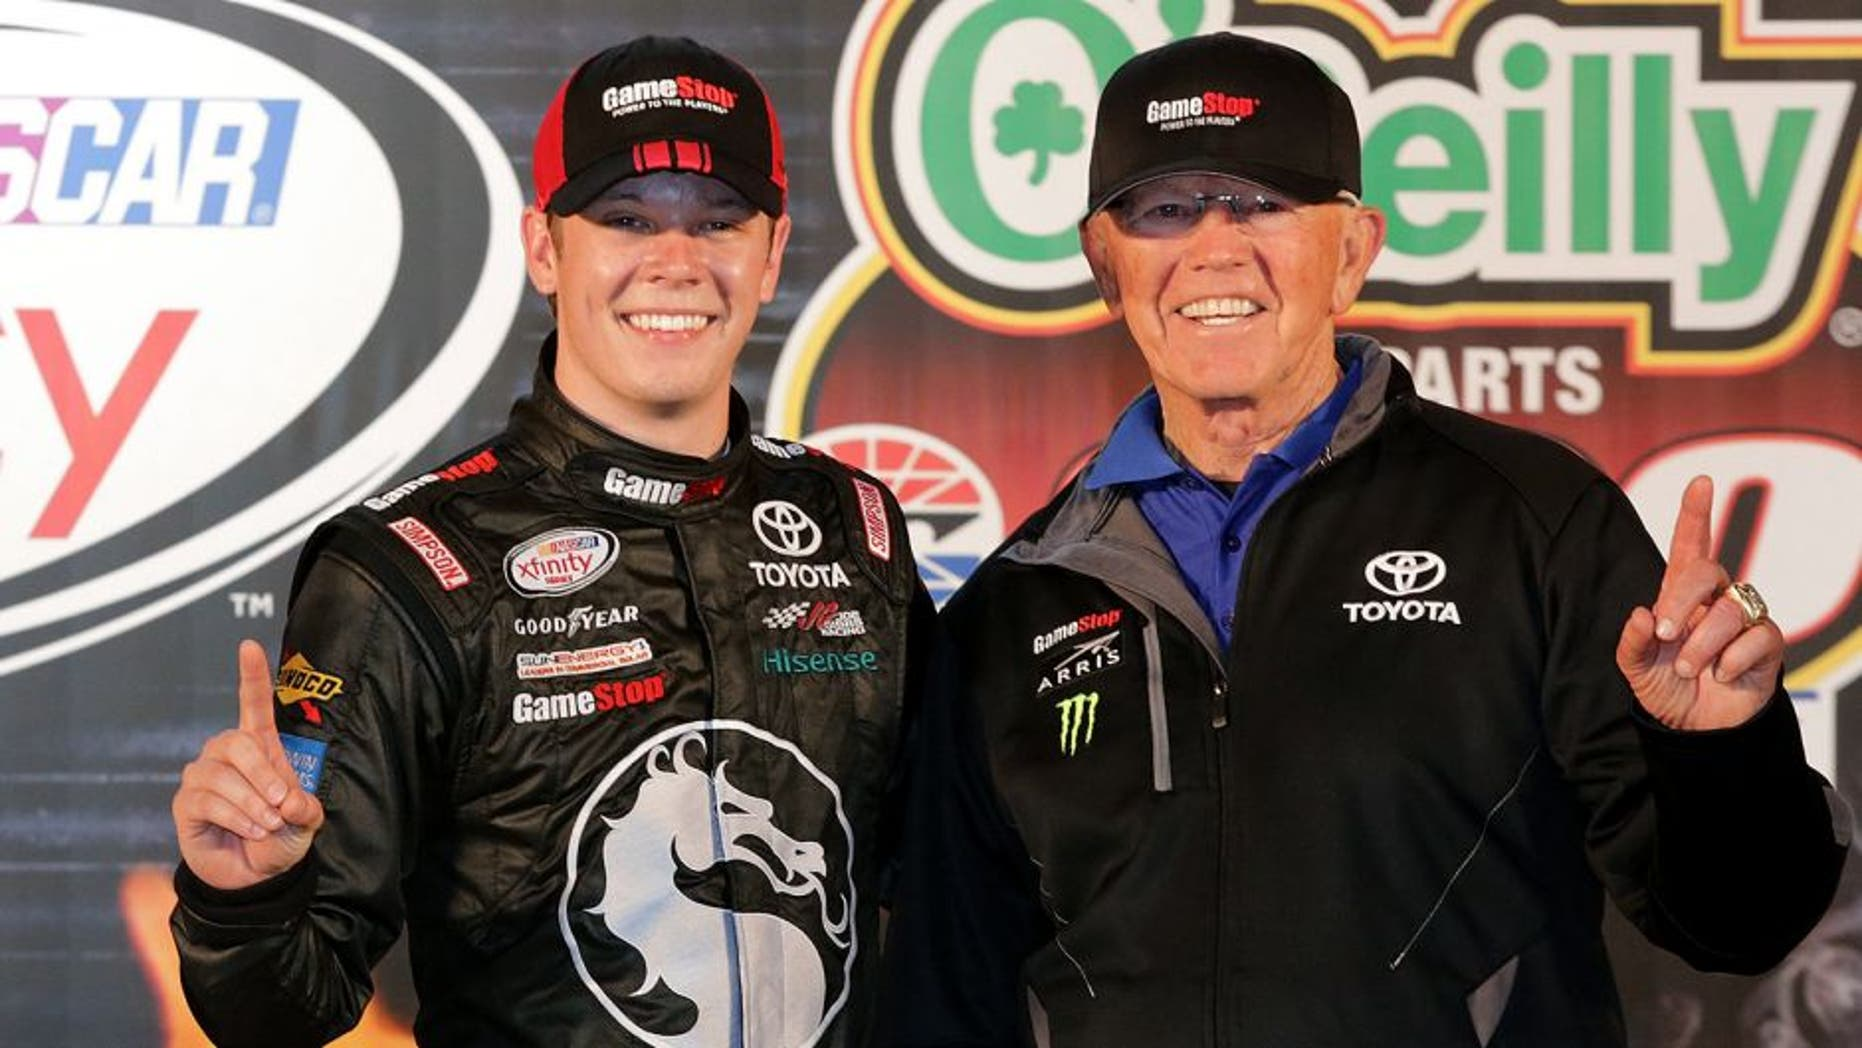 FORT WORTH, TX - APRIL 10: Erik Jones, driver of the #20 GameStop/Mortal Kombat X Toyota, and team owner Joe Gibbs pose with the trophy in Victory Lane after winning the NASCAR XFINITY Series O'Reilly Auto Parts 300 at Texas Motor Speedway on April 10, 2015 in Fort Worth, Texas. (Photo by Jerry Markland/Getty Images for Texas Motor Speedway)